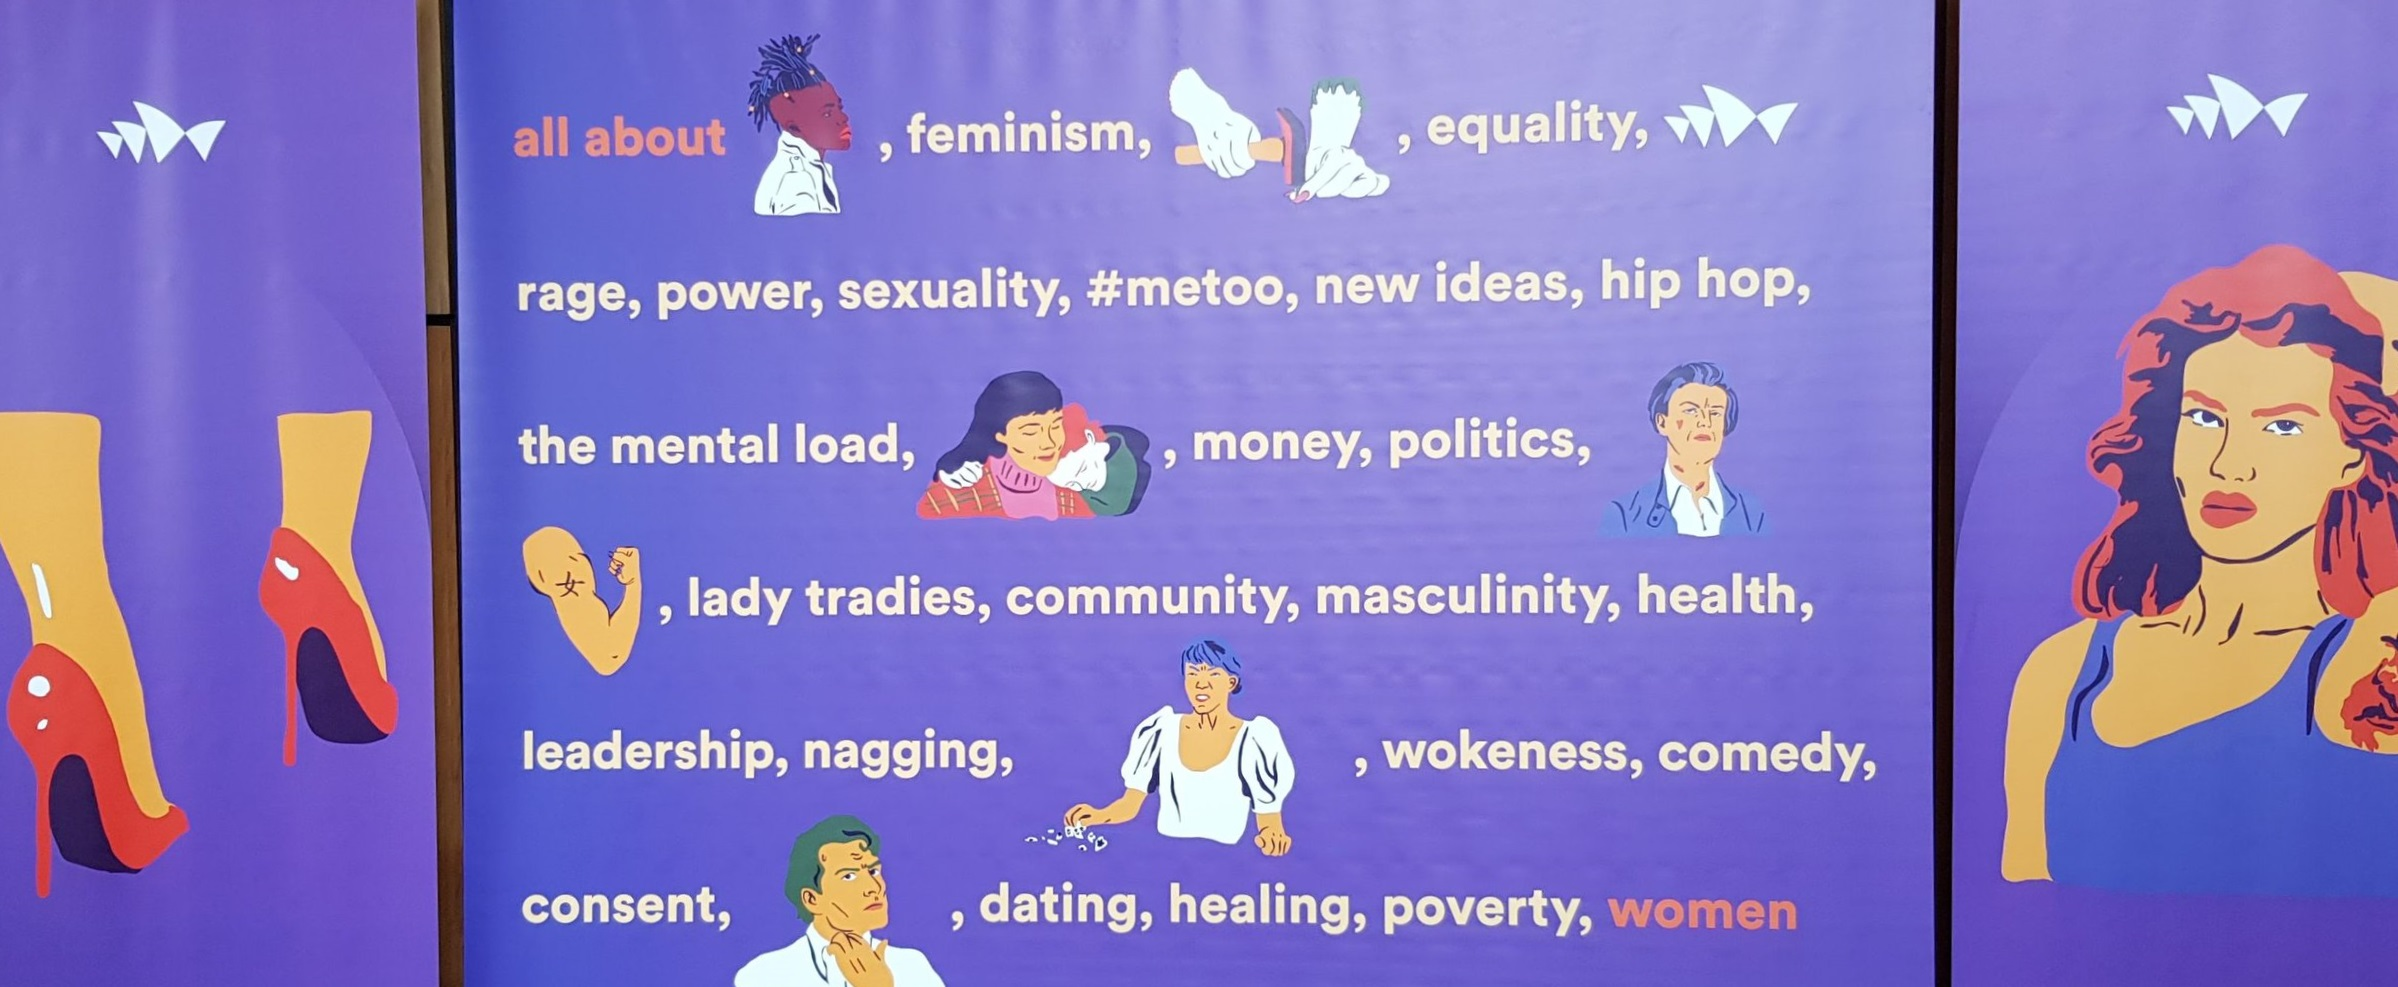 Foyer Photo-Op at Sydney Opera House's  All About Women  Day